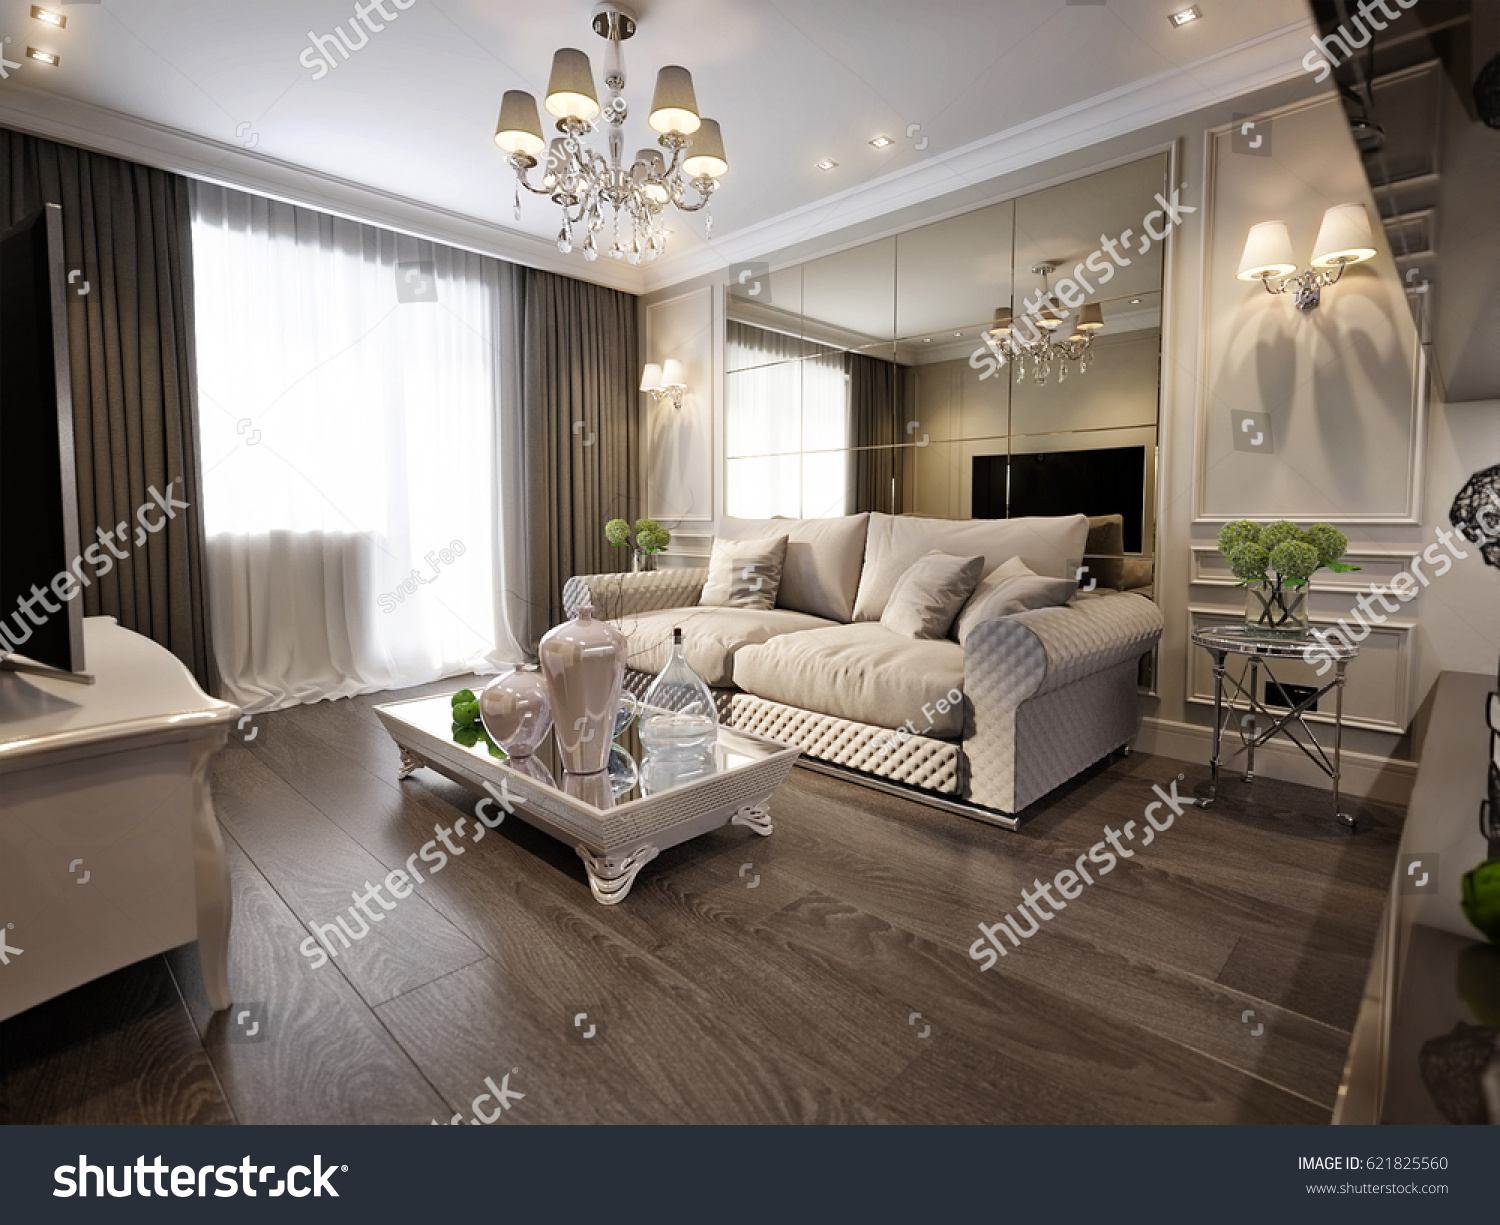 Traditional living rooms with tv - Modern Classic New Traditional Living Room Interior Design With Gray Brown Glossy Chrome Furniture Tv Area